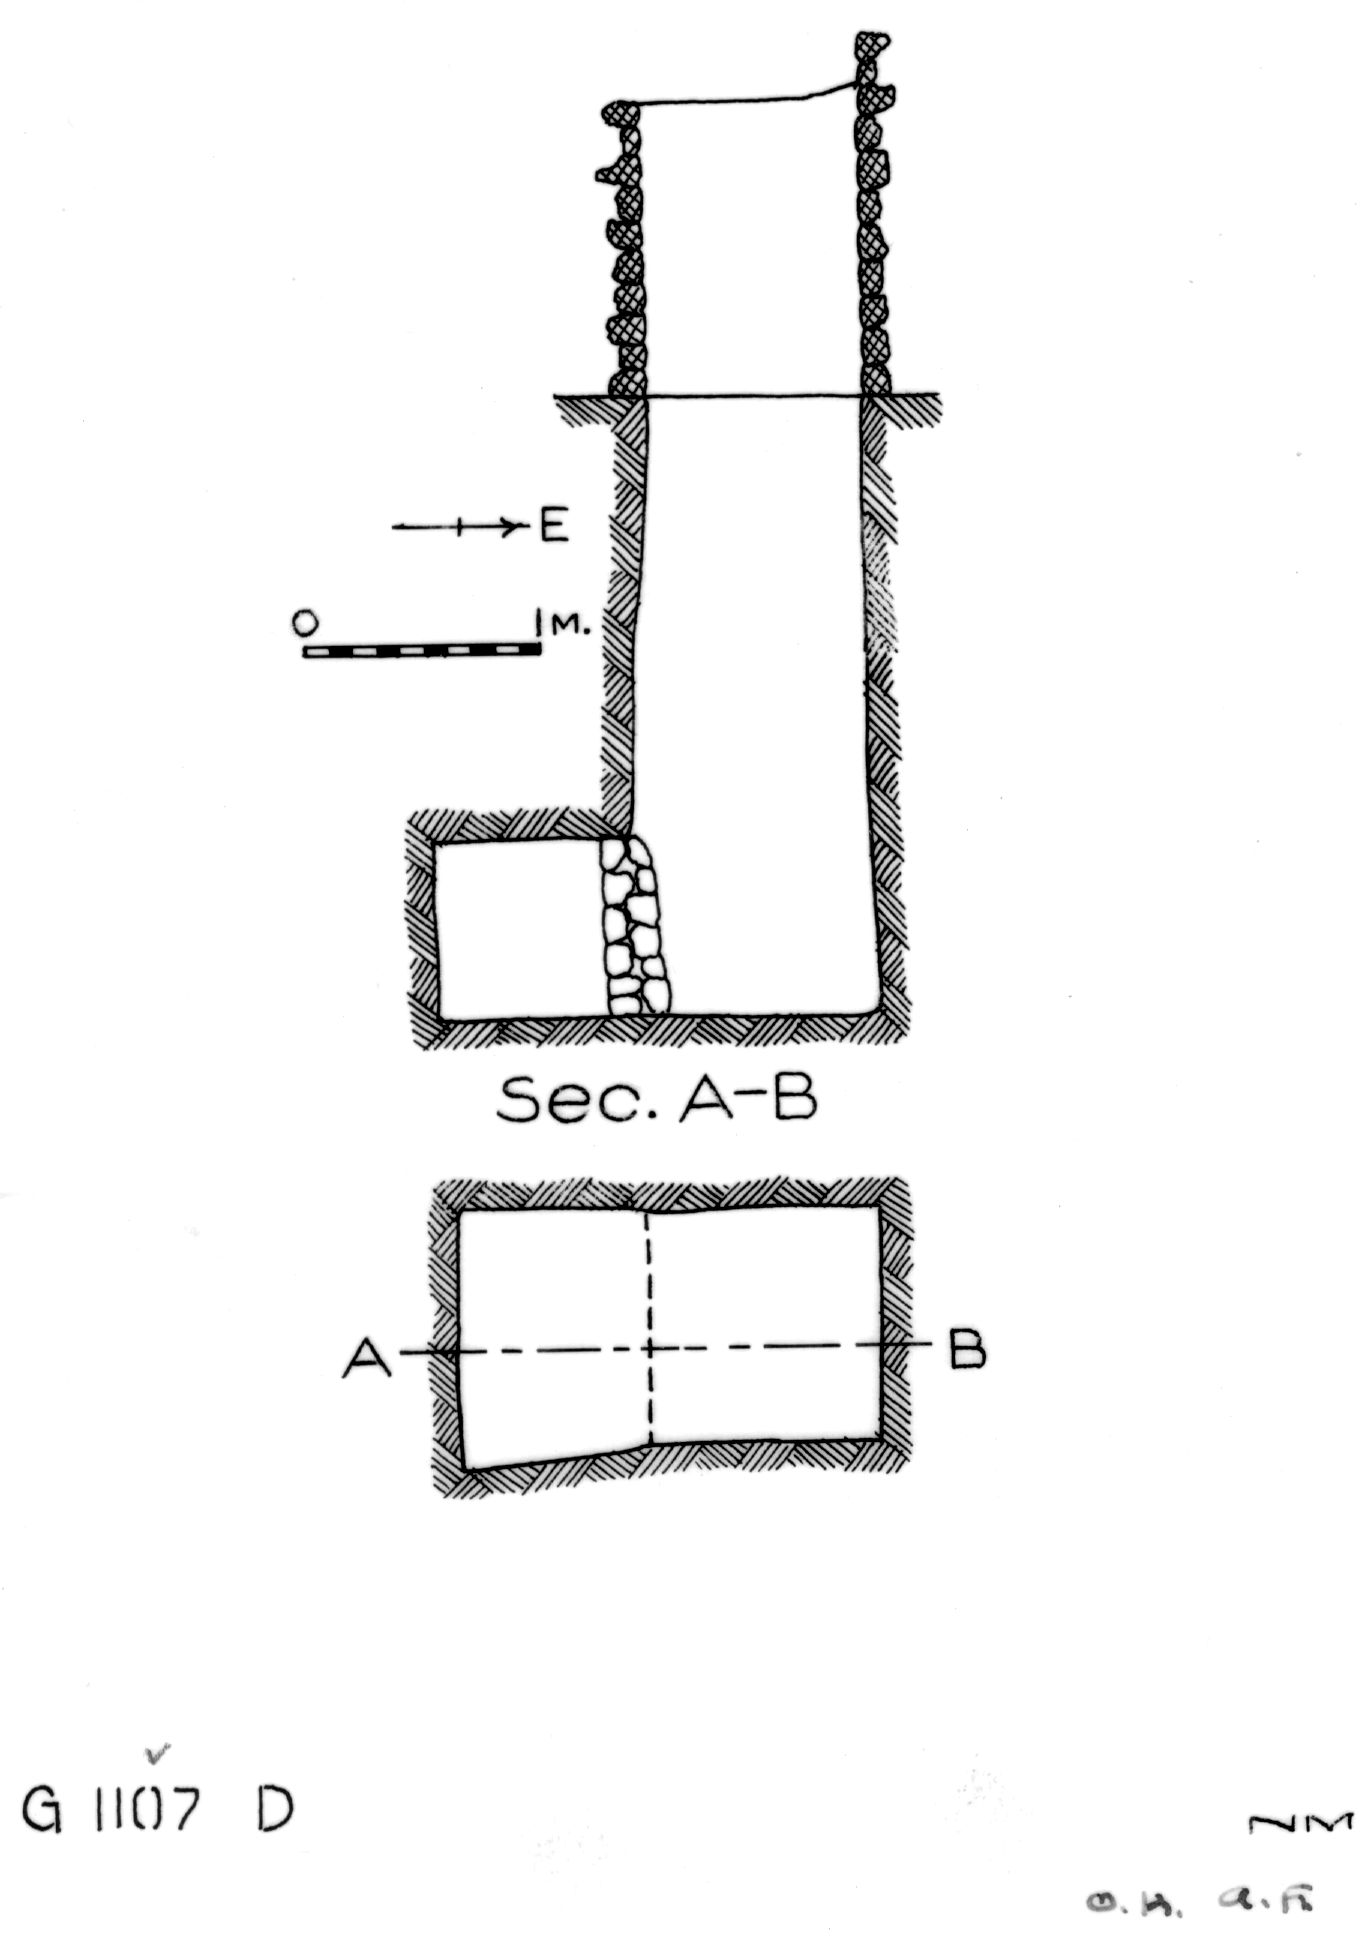 Maps and plans: G 1107, Shaft D